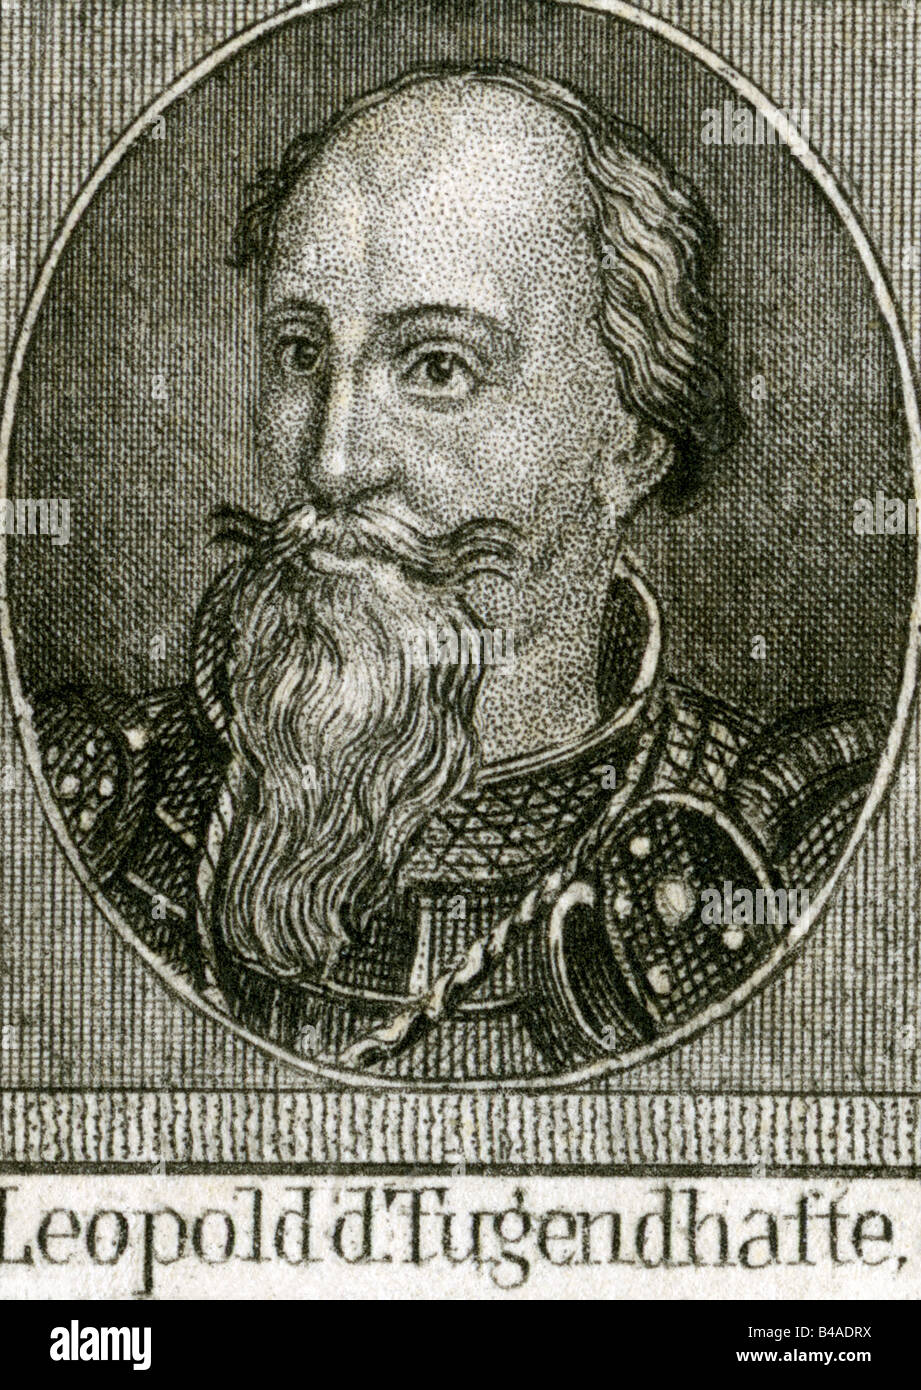 "Leopold V ""the Virtuous"", 1157 - 31.12.1194, Duke of Austria 1177 - 1194,  portrait, steel engraving, 19th century, Artist's Copyright has not to be  cleared"